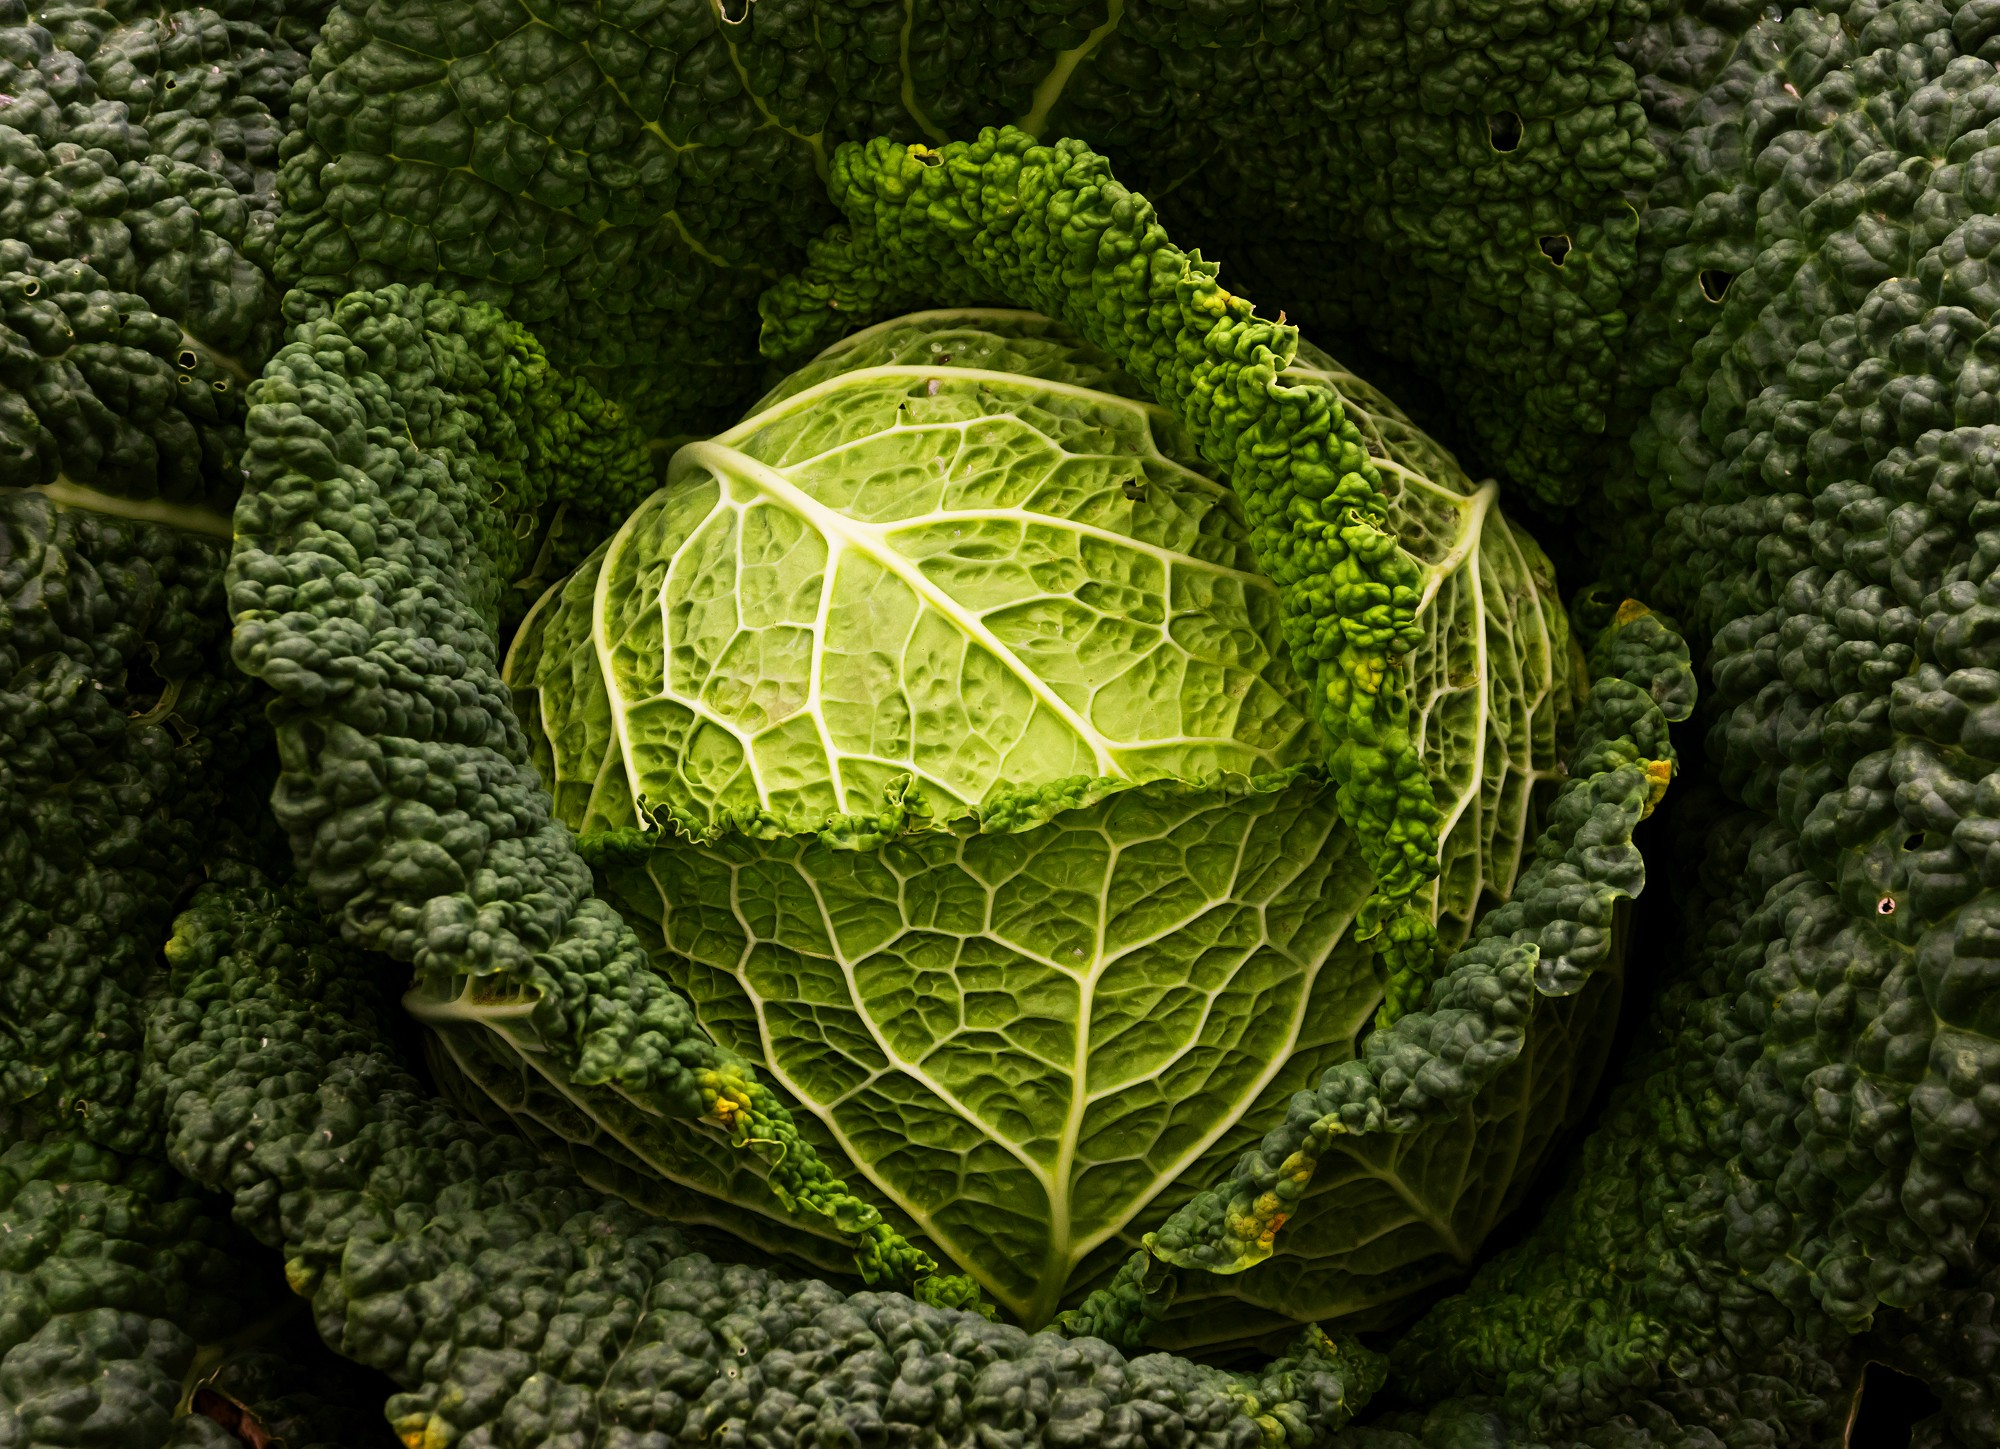 A large, crisp, dark green head of cabbage.